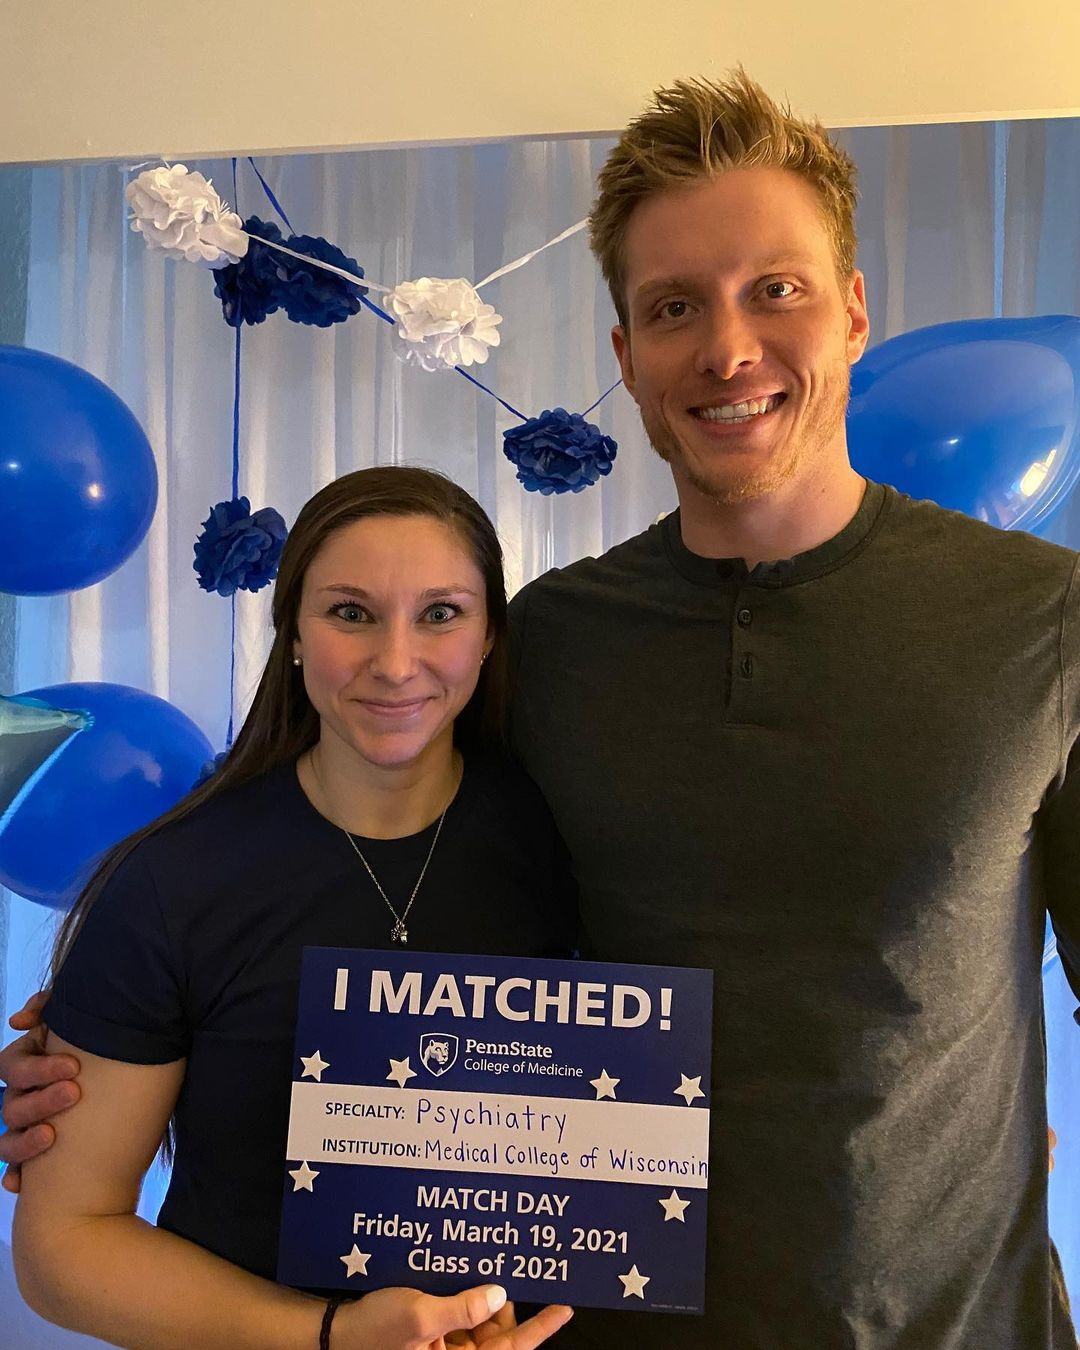 A couple stands indoors holding an I Matched sign for Psychiatry at Medical College of Wisconsin.